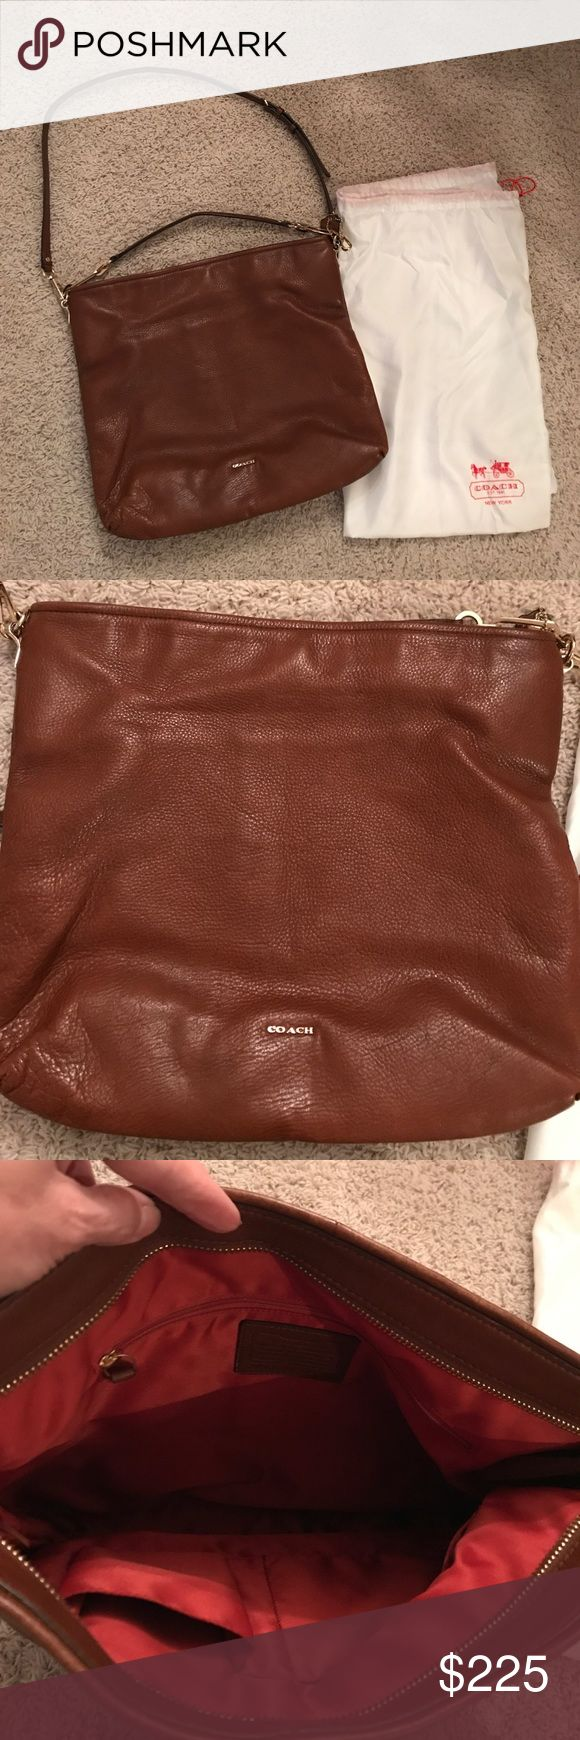 Brown leather Coach Hobo Bag Brown leather Coach Hobo style Bag! In great shape, soft leather, so comfortable to wear crossbody or shoulder! This bag is perfect for the Mom that has lots to carry around!:-) Dust bag included Coach Bags Crossbody Bags